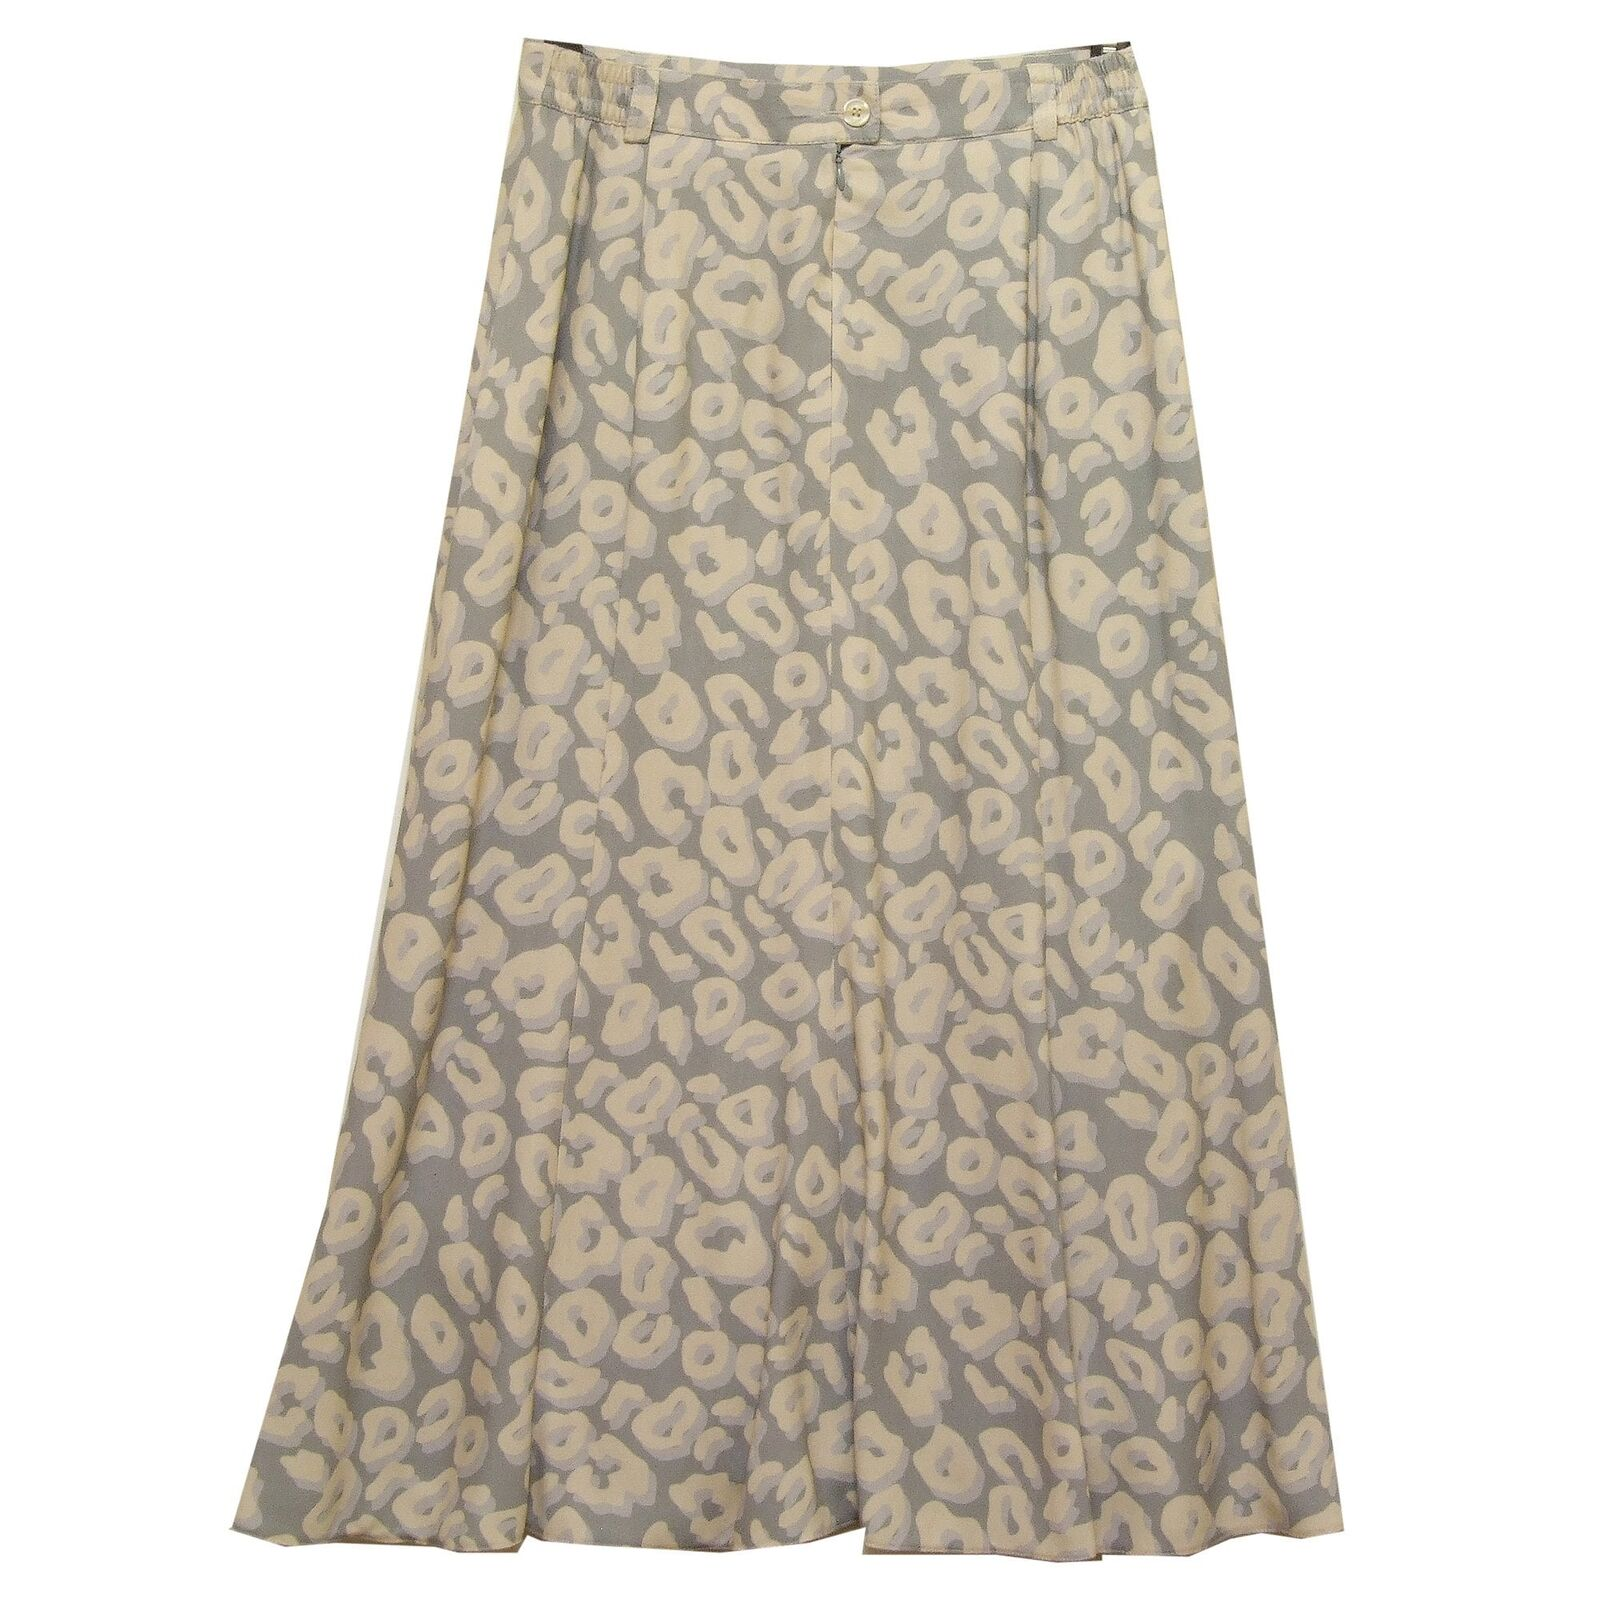 Skirt 3920 81403 Grey with Beige